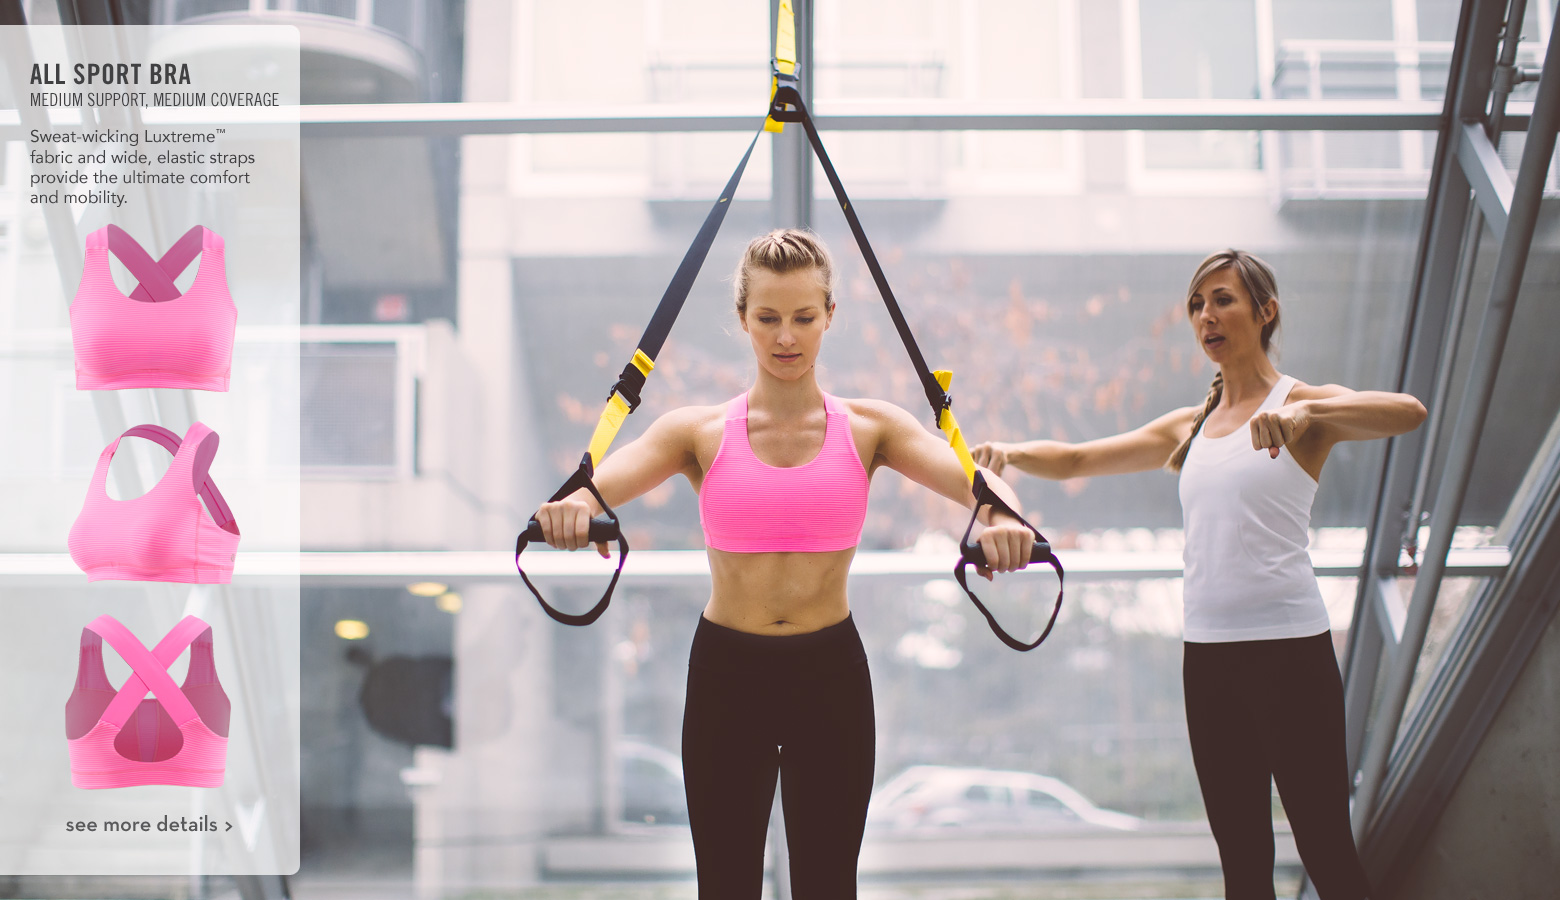 think running, cardio or gym classes – this multipurpose bra has got you covered